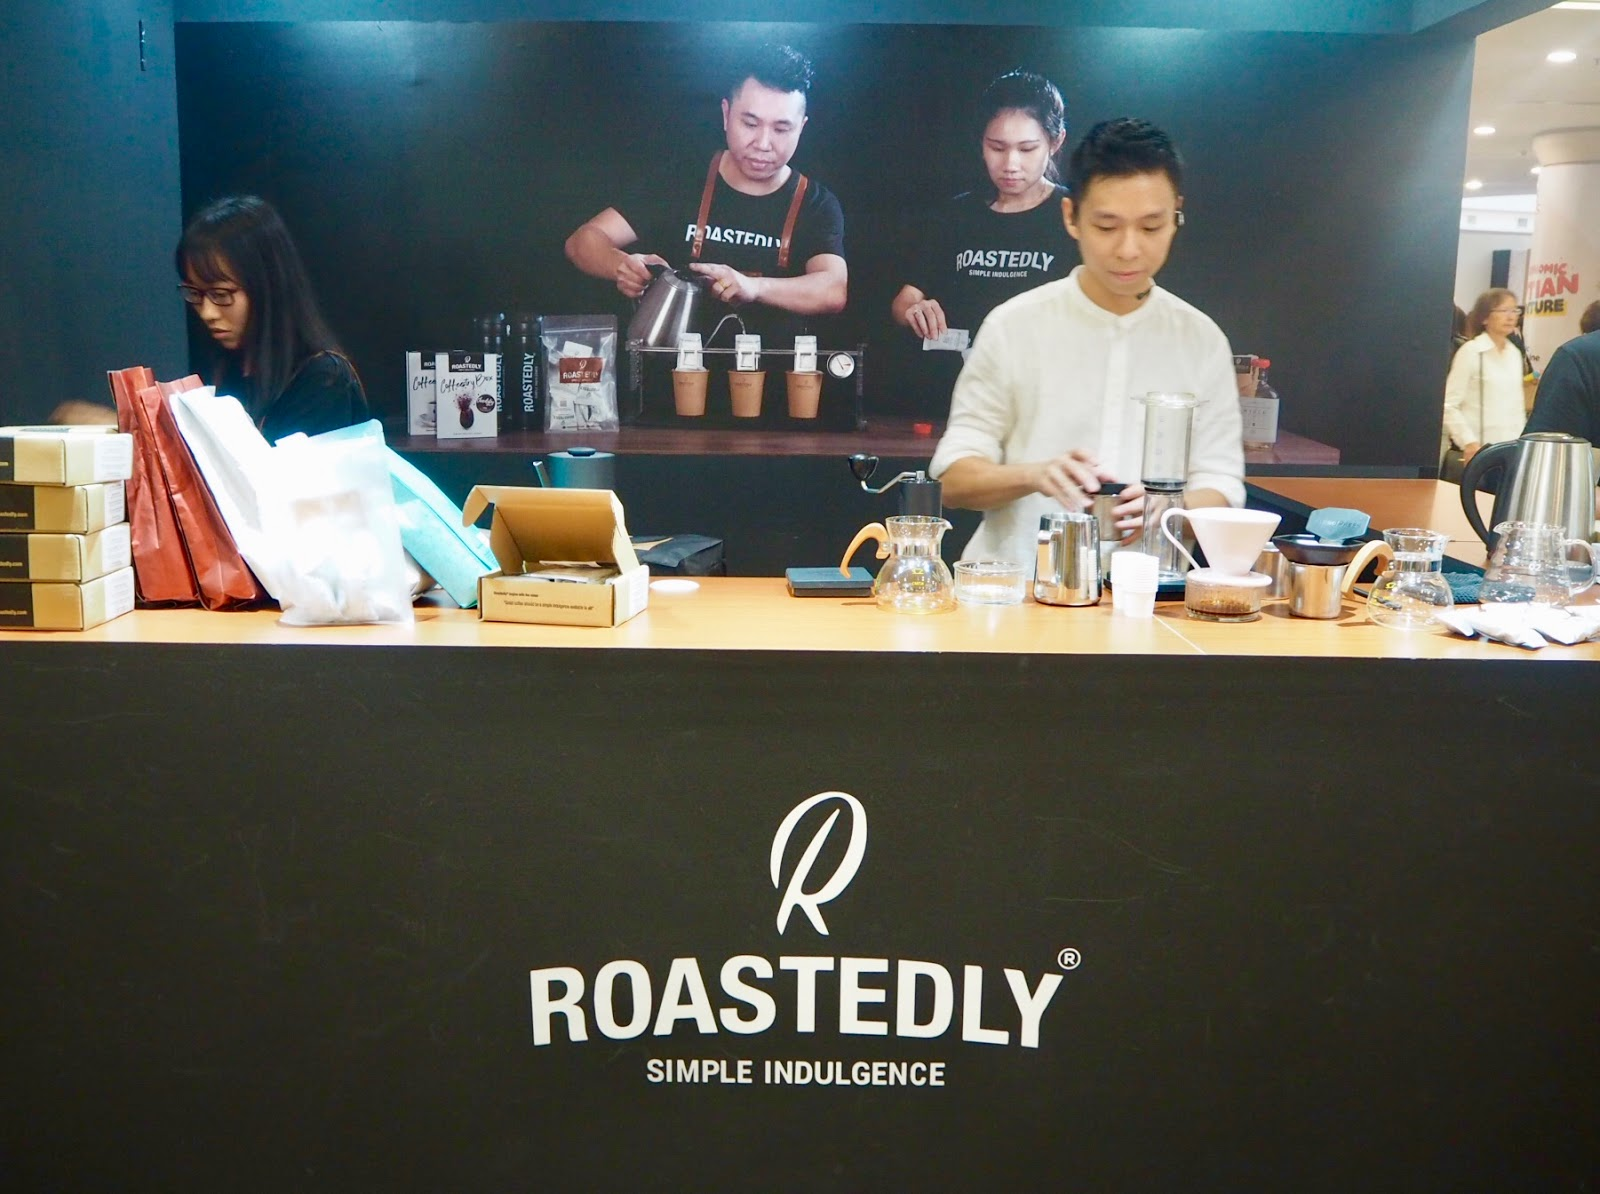 [Event] Roastedly ® hosts Malaysia's world coffee champions Regine Wai and Jason Loo at Malaysia Coffee Fest 2019